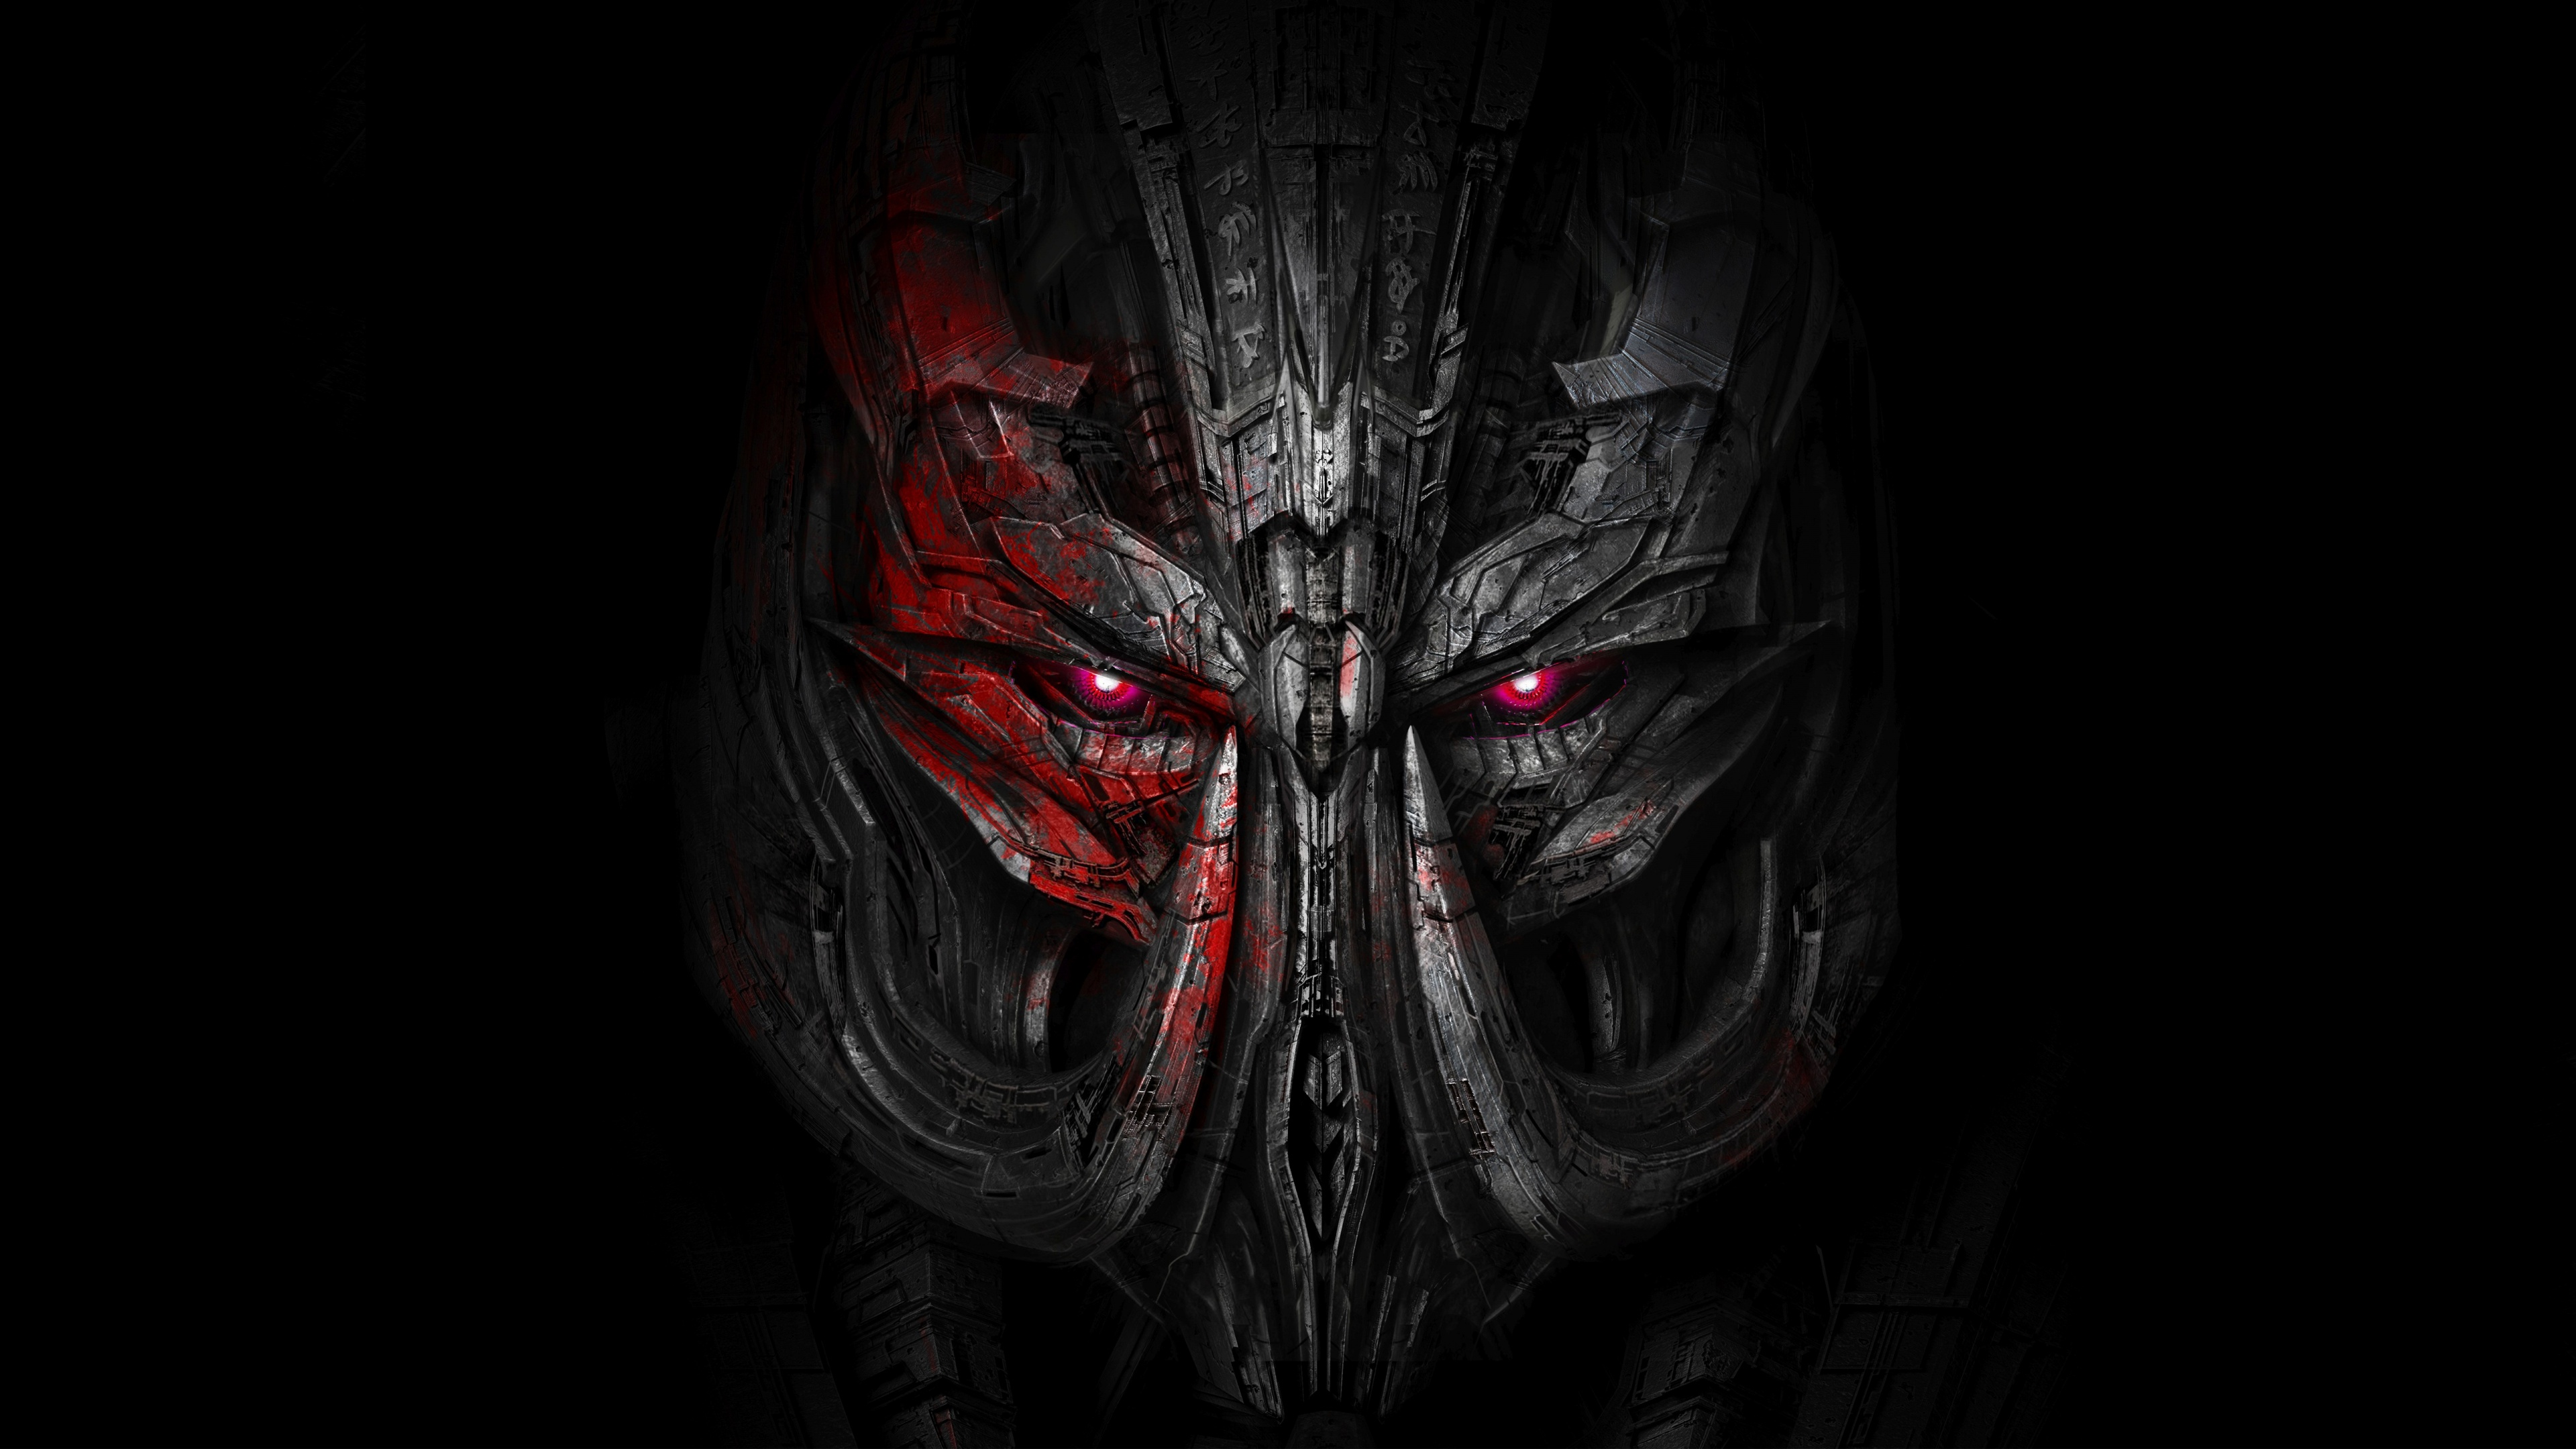 Megatron Transformers The Last Knight Wallpapers In Jpg